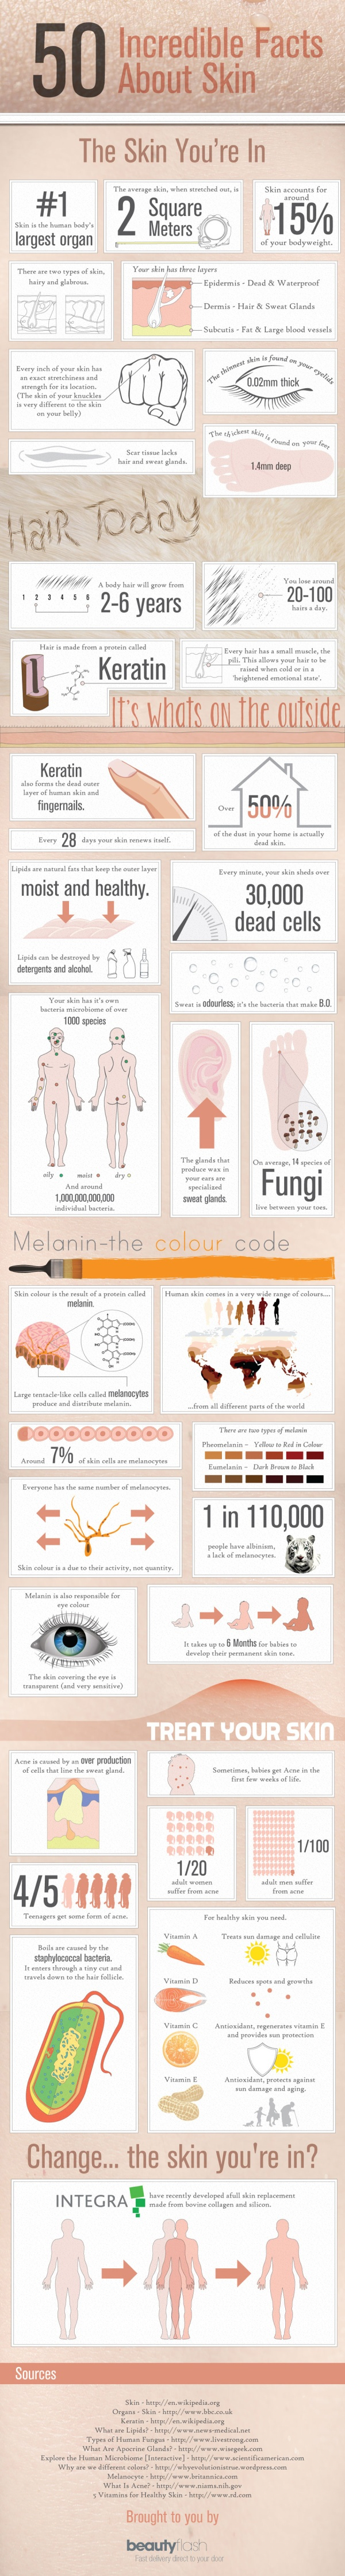 Infographic: 50 Incredible Facts About Your Skin